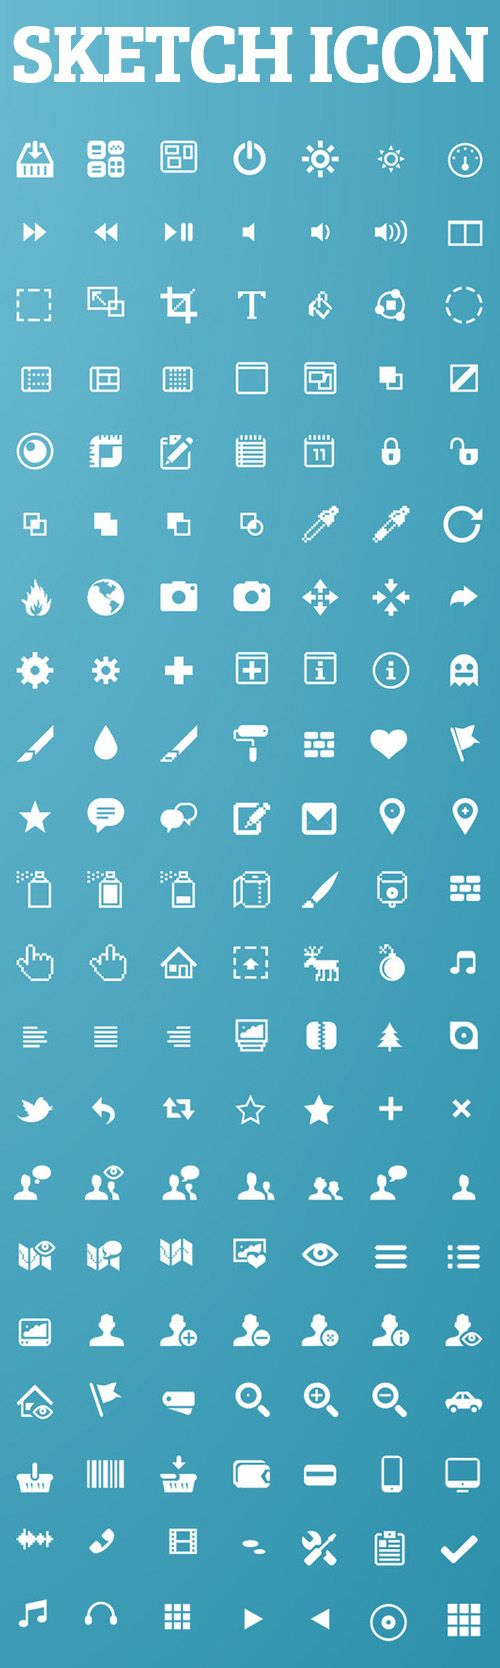 Sketch App Icons For Web UI Design